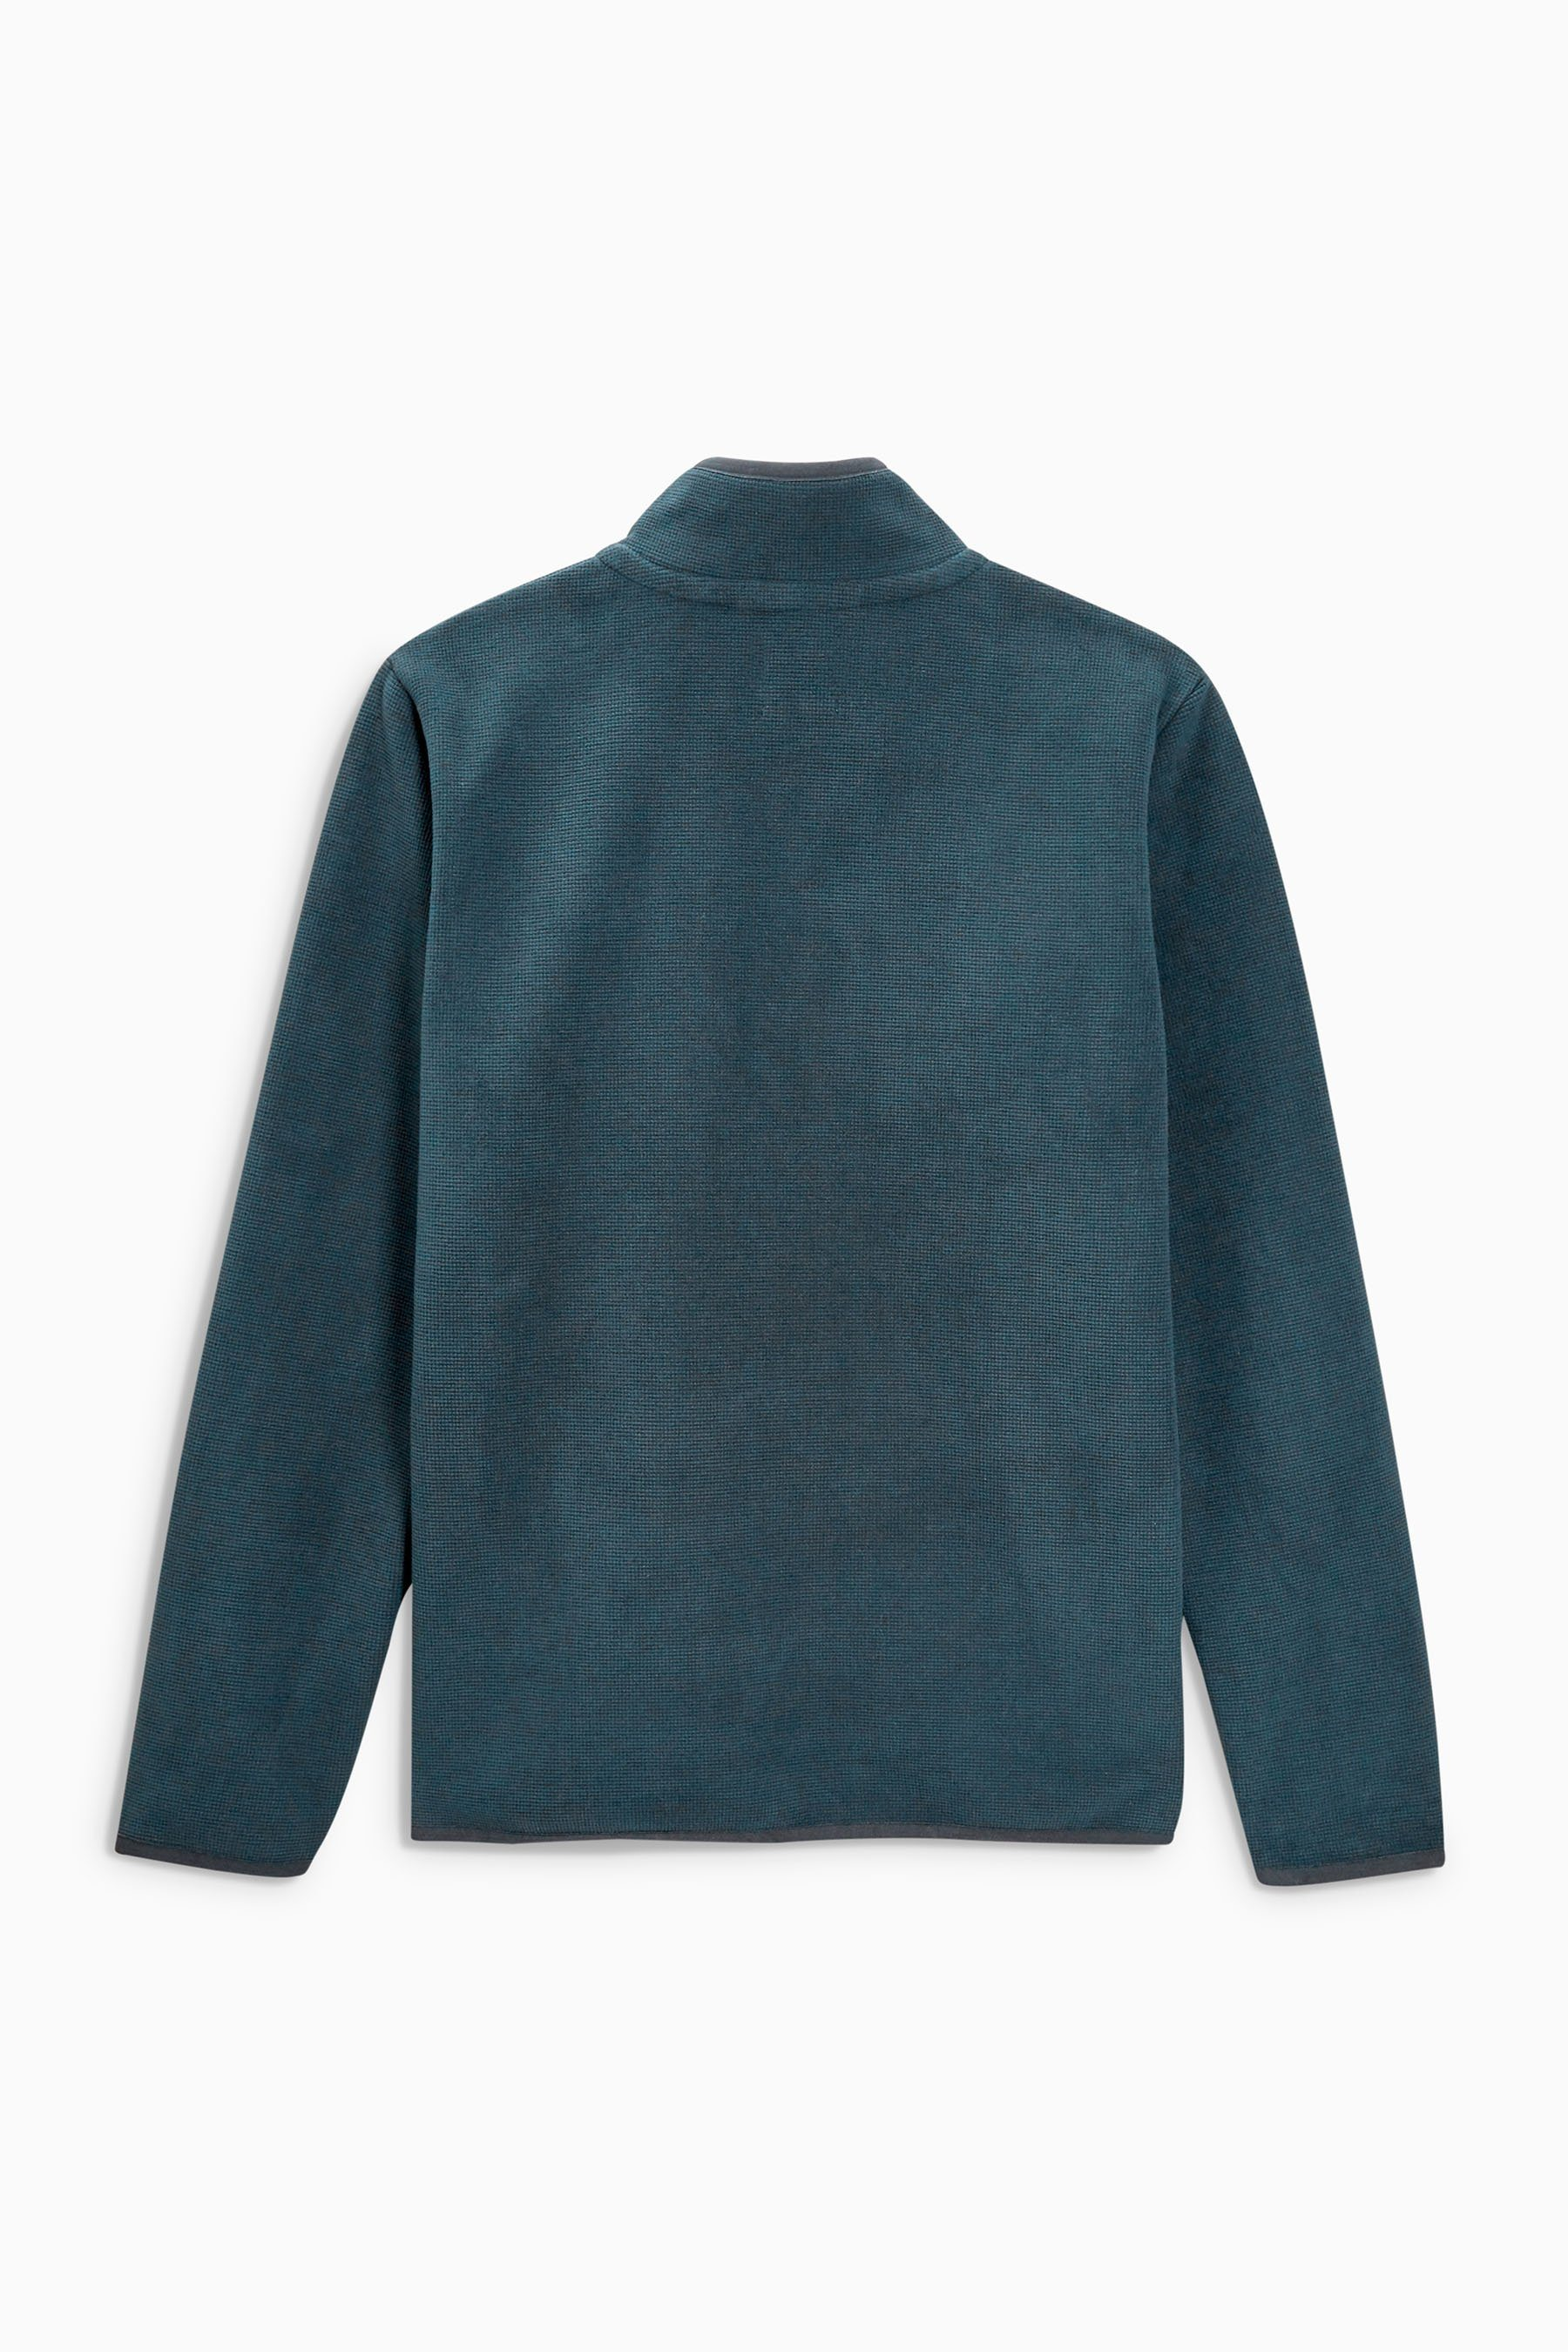 Next Fleece-Pullover mit RV-Kragen